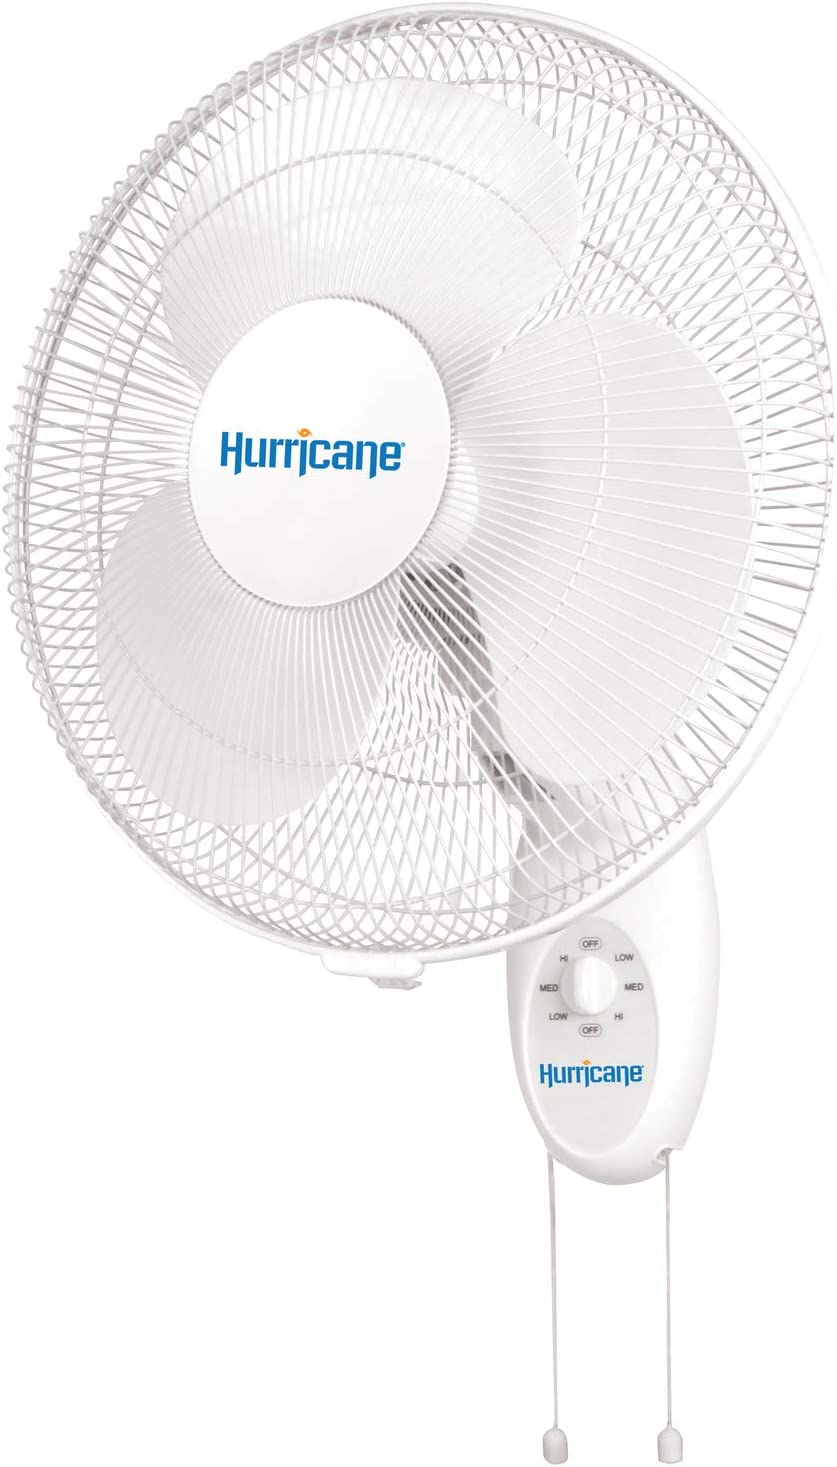 Amazon Com Hurricane Hgc736505 Wall Mount Fan 16 Inch Supreme Series 90 Degree Oscillation 3 Speed Settings Adjustable Tilt Etl Listed 16 Inch White Home Kitchen